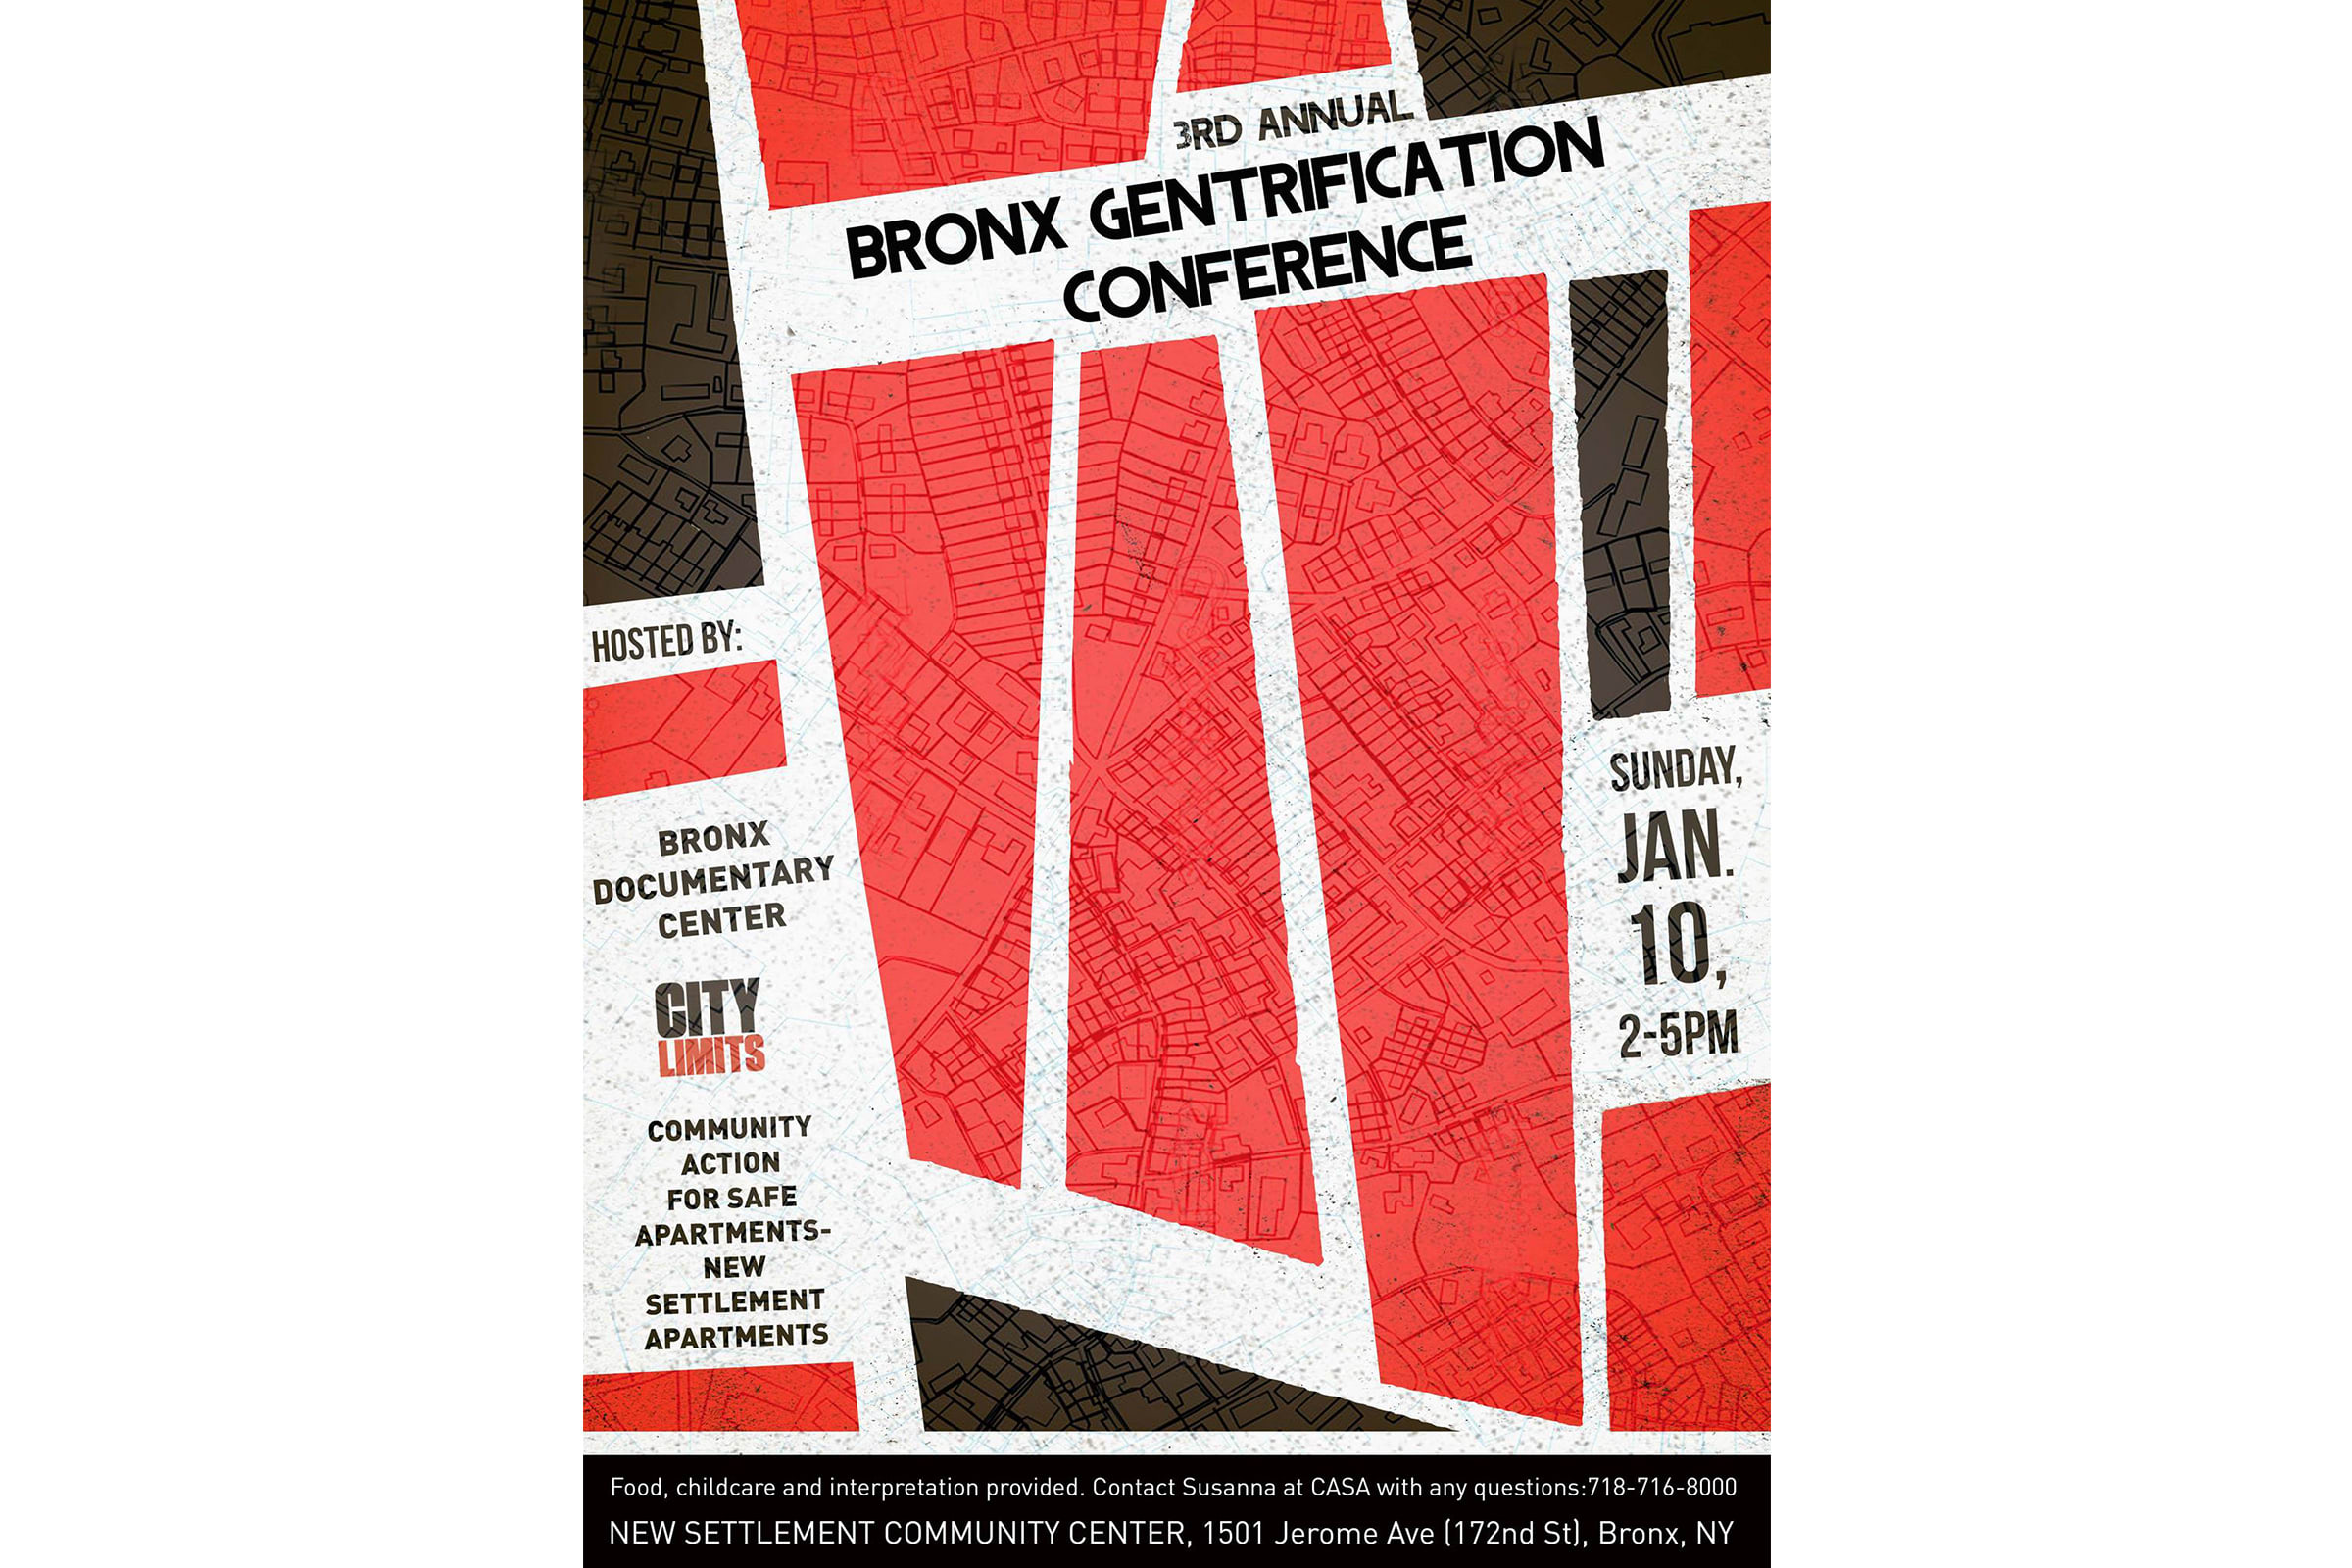 3rd Annual Bronx Gentrification Conference